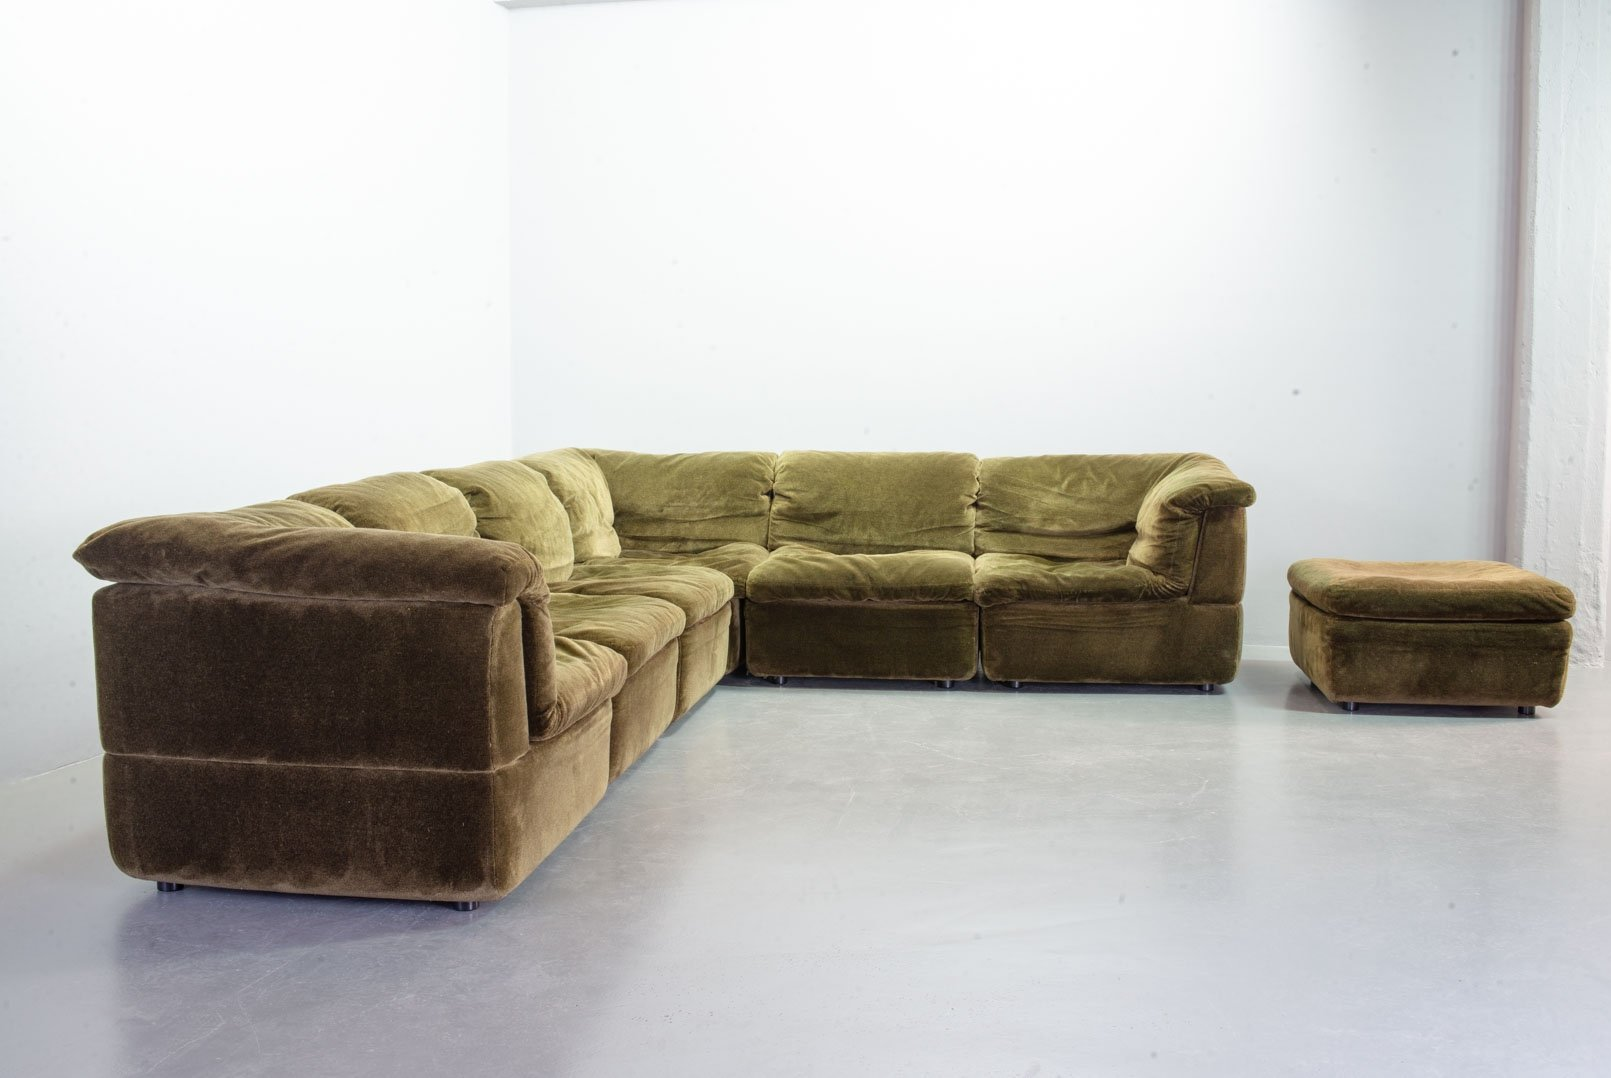 Rolf Benz Moss Green Velvet Modular Sectional Sofa With 7 Elements Germany 1970s 142919